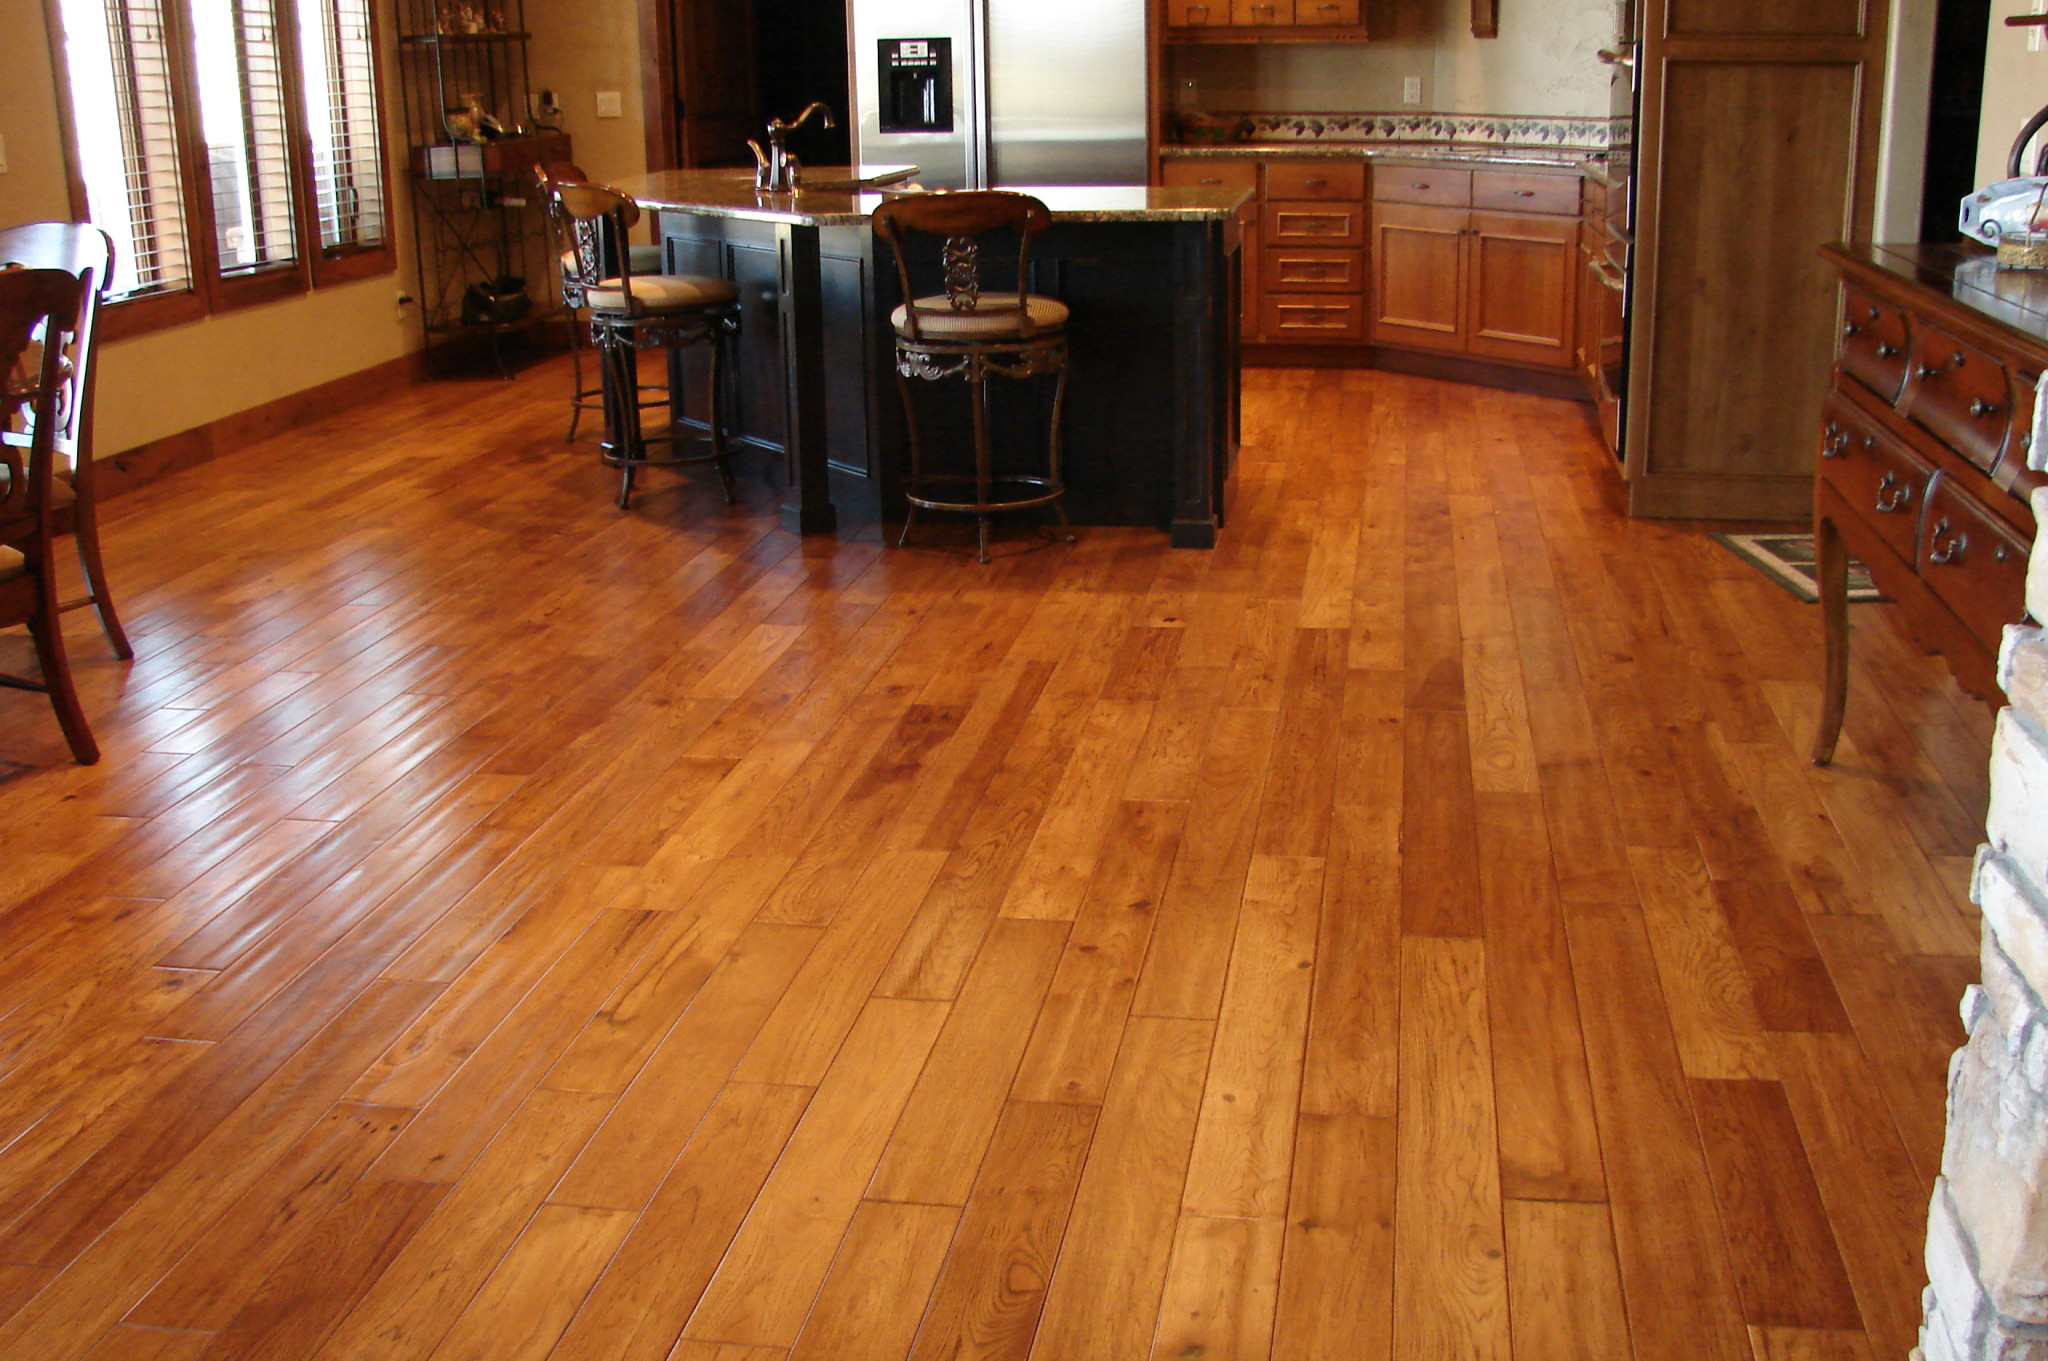 Wood Tile Floor Kitchen Wood Floors Tile Linoleum Jmarvinhandyman